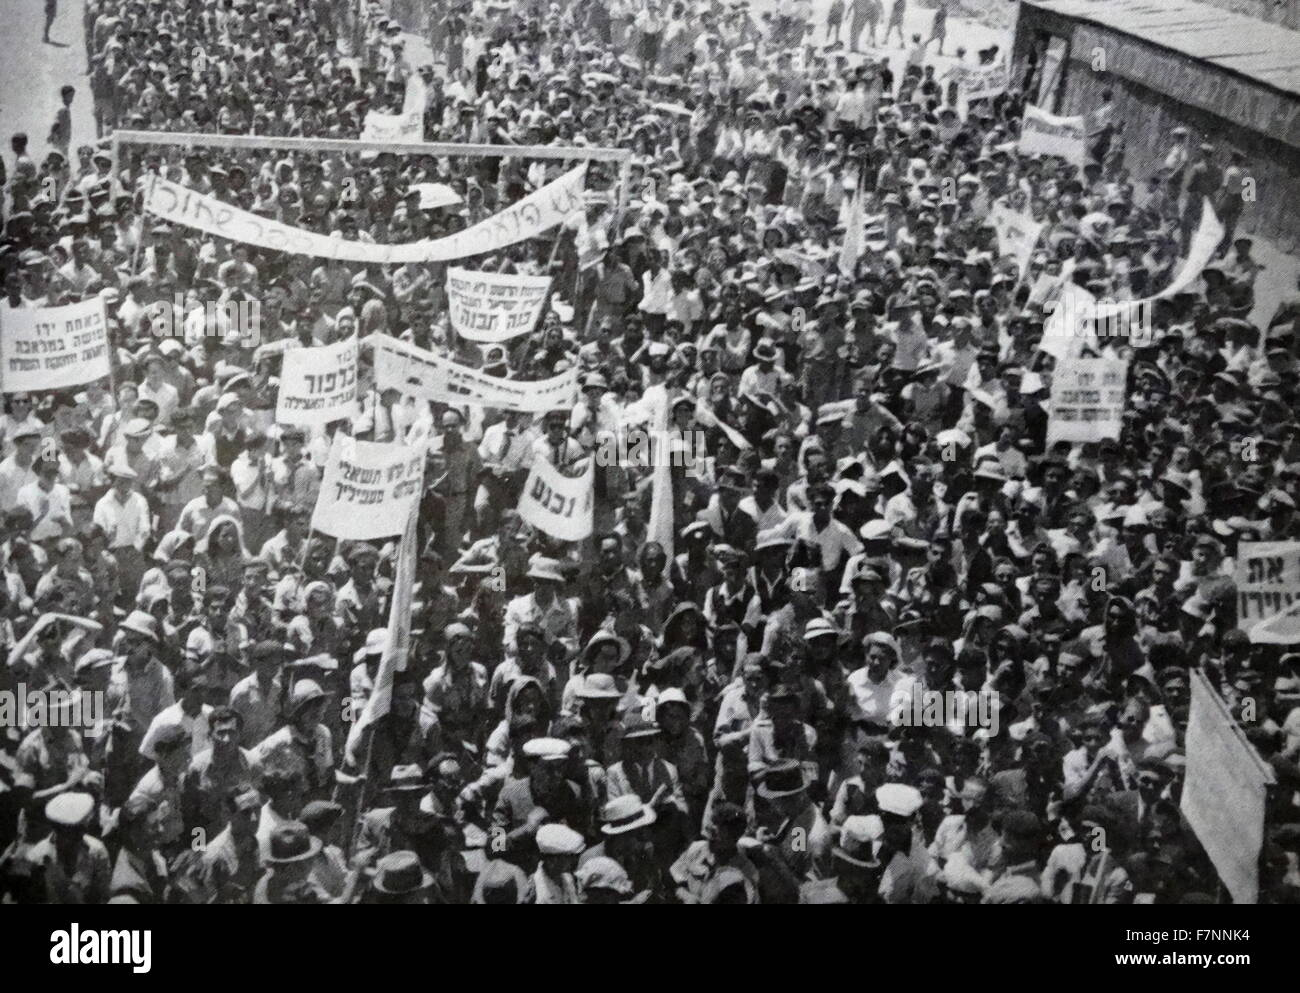 protest by Zionist Jews in Palestine 1936 - Stock Image